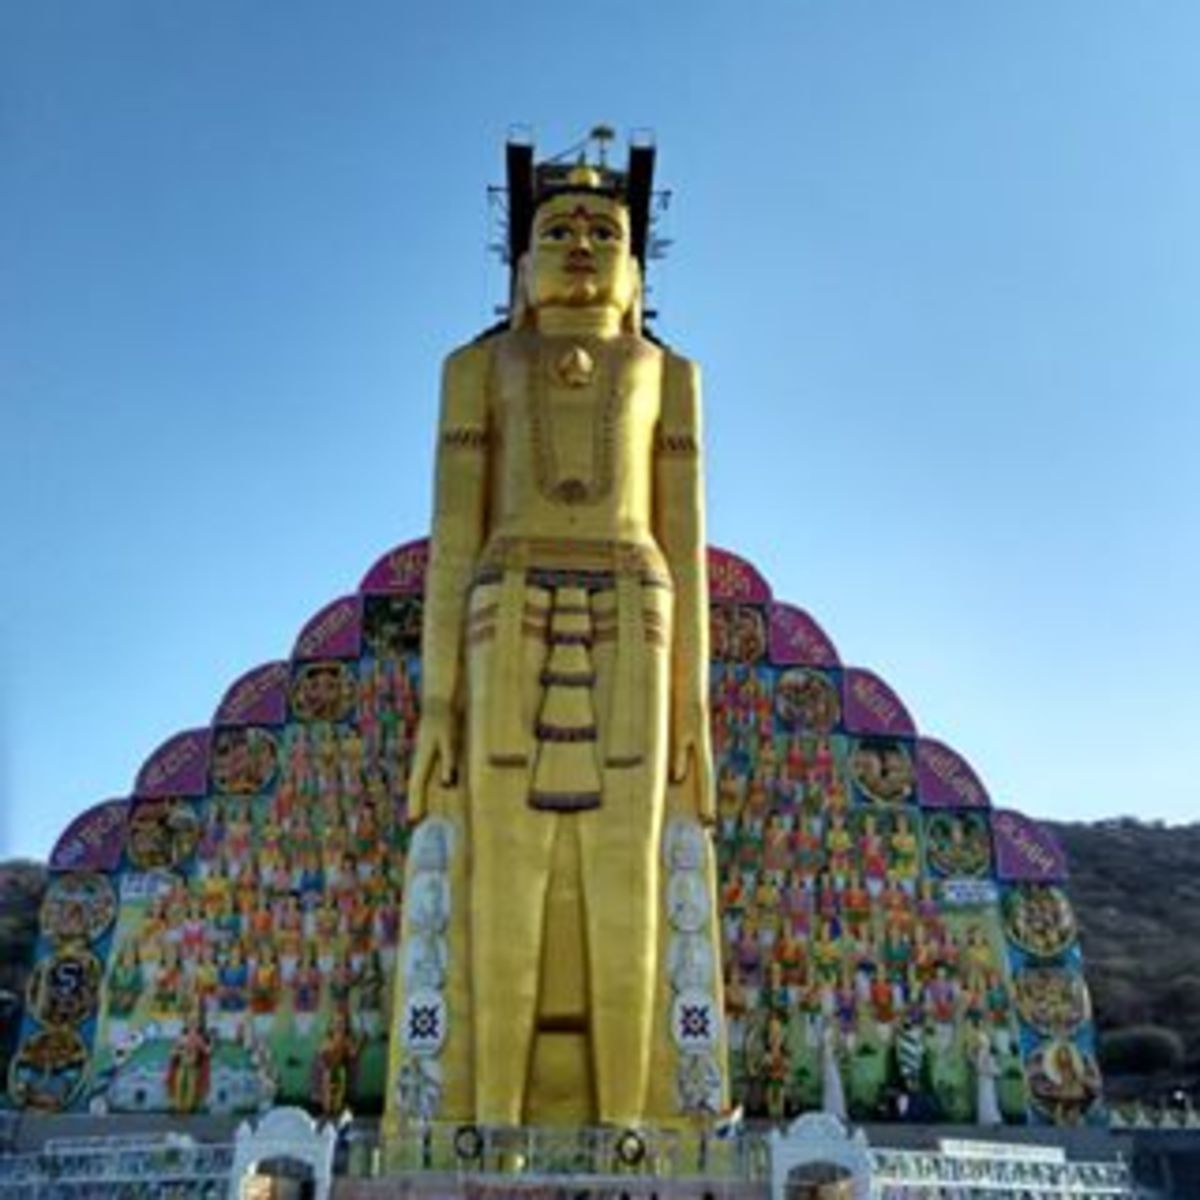 108 feet tall Statue of Jain Lord Adinath in Palitana, Bhavnagar Gujatrat